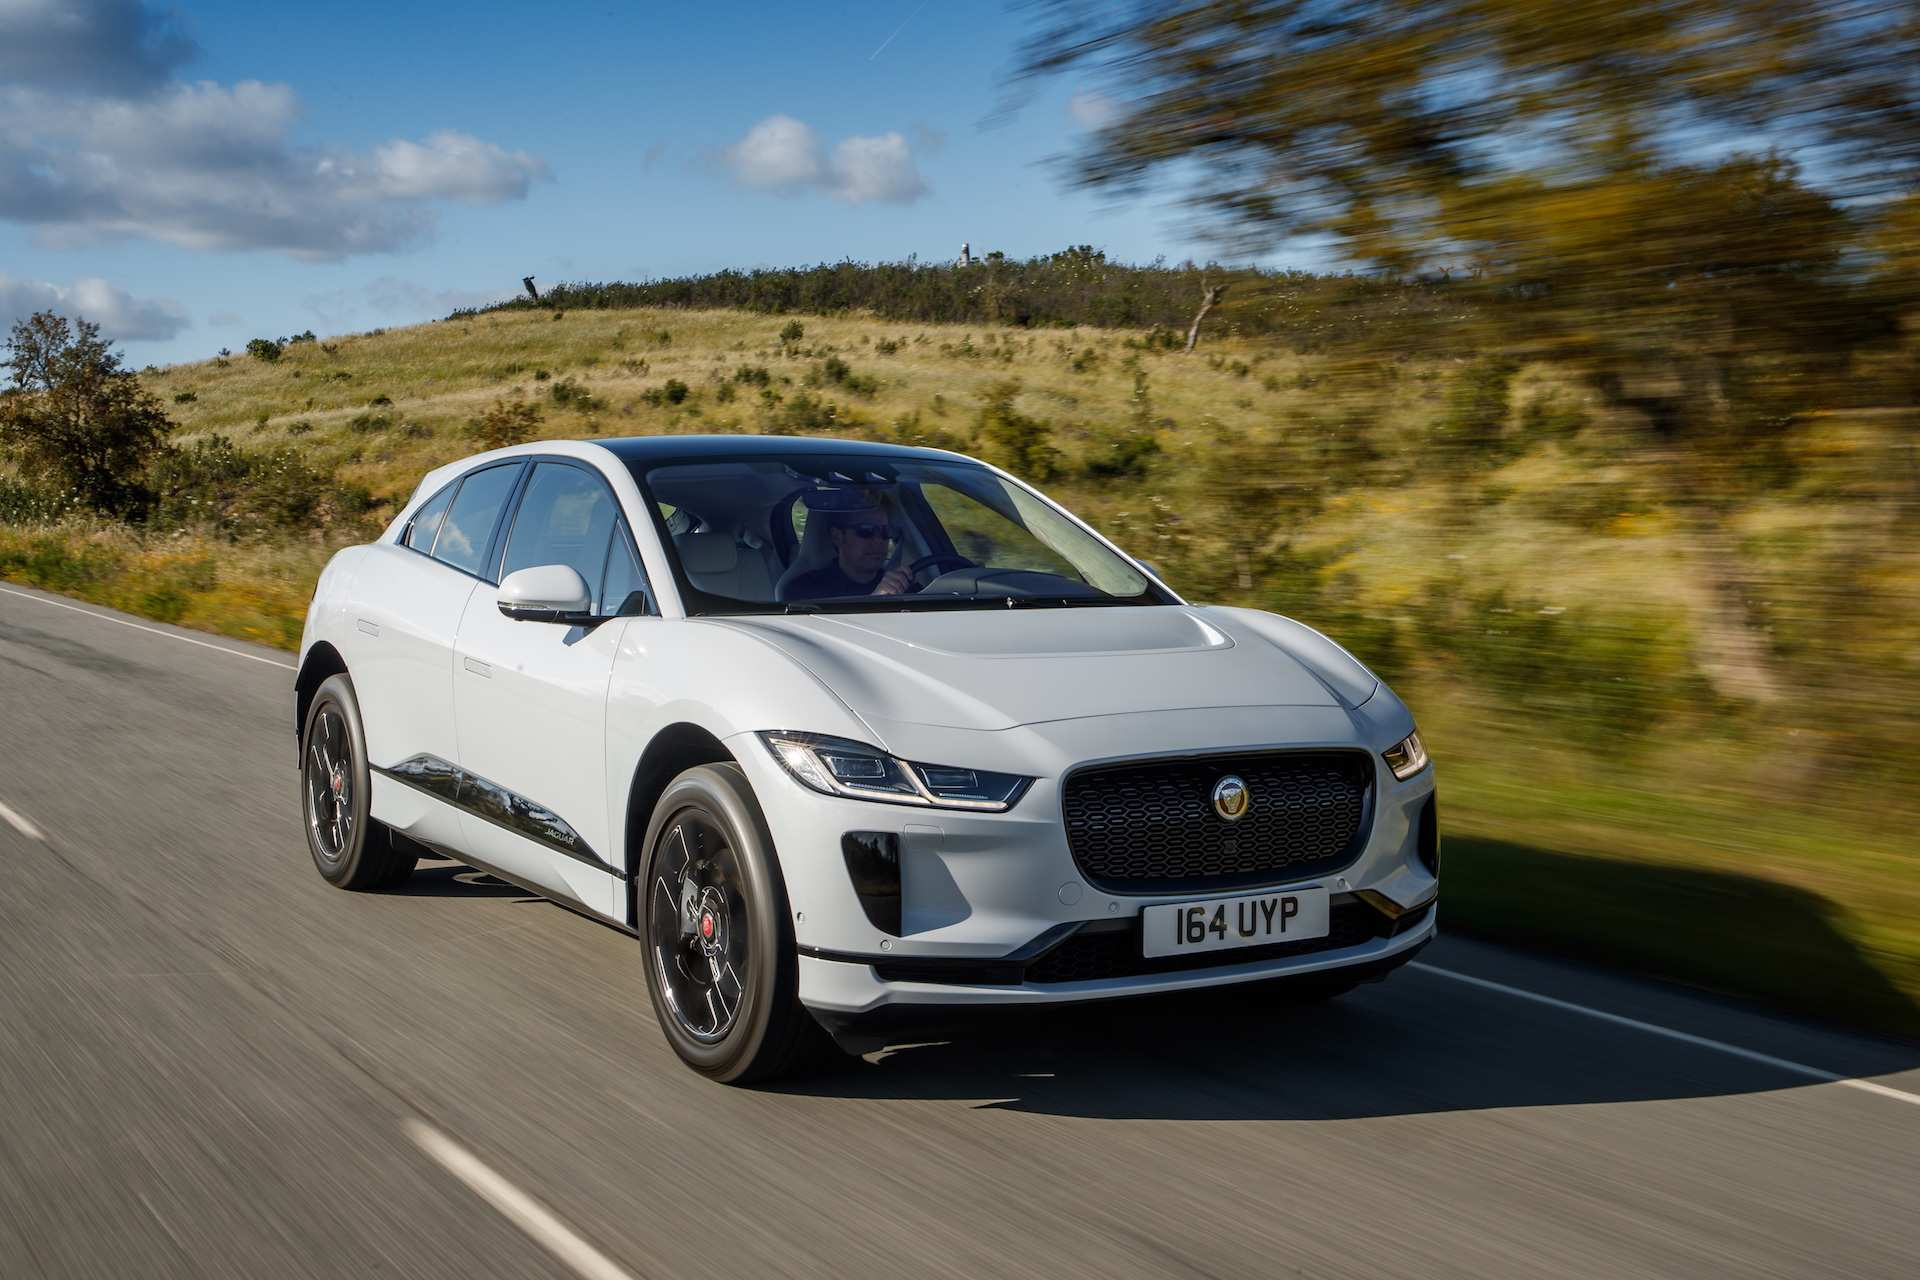 76 Great 2019 Jaguar Electric Rumors for 2019 Jaguar Electric